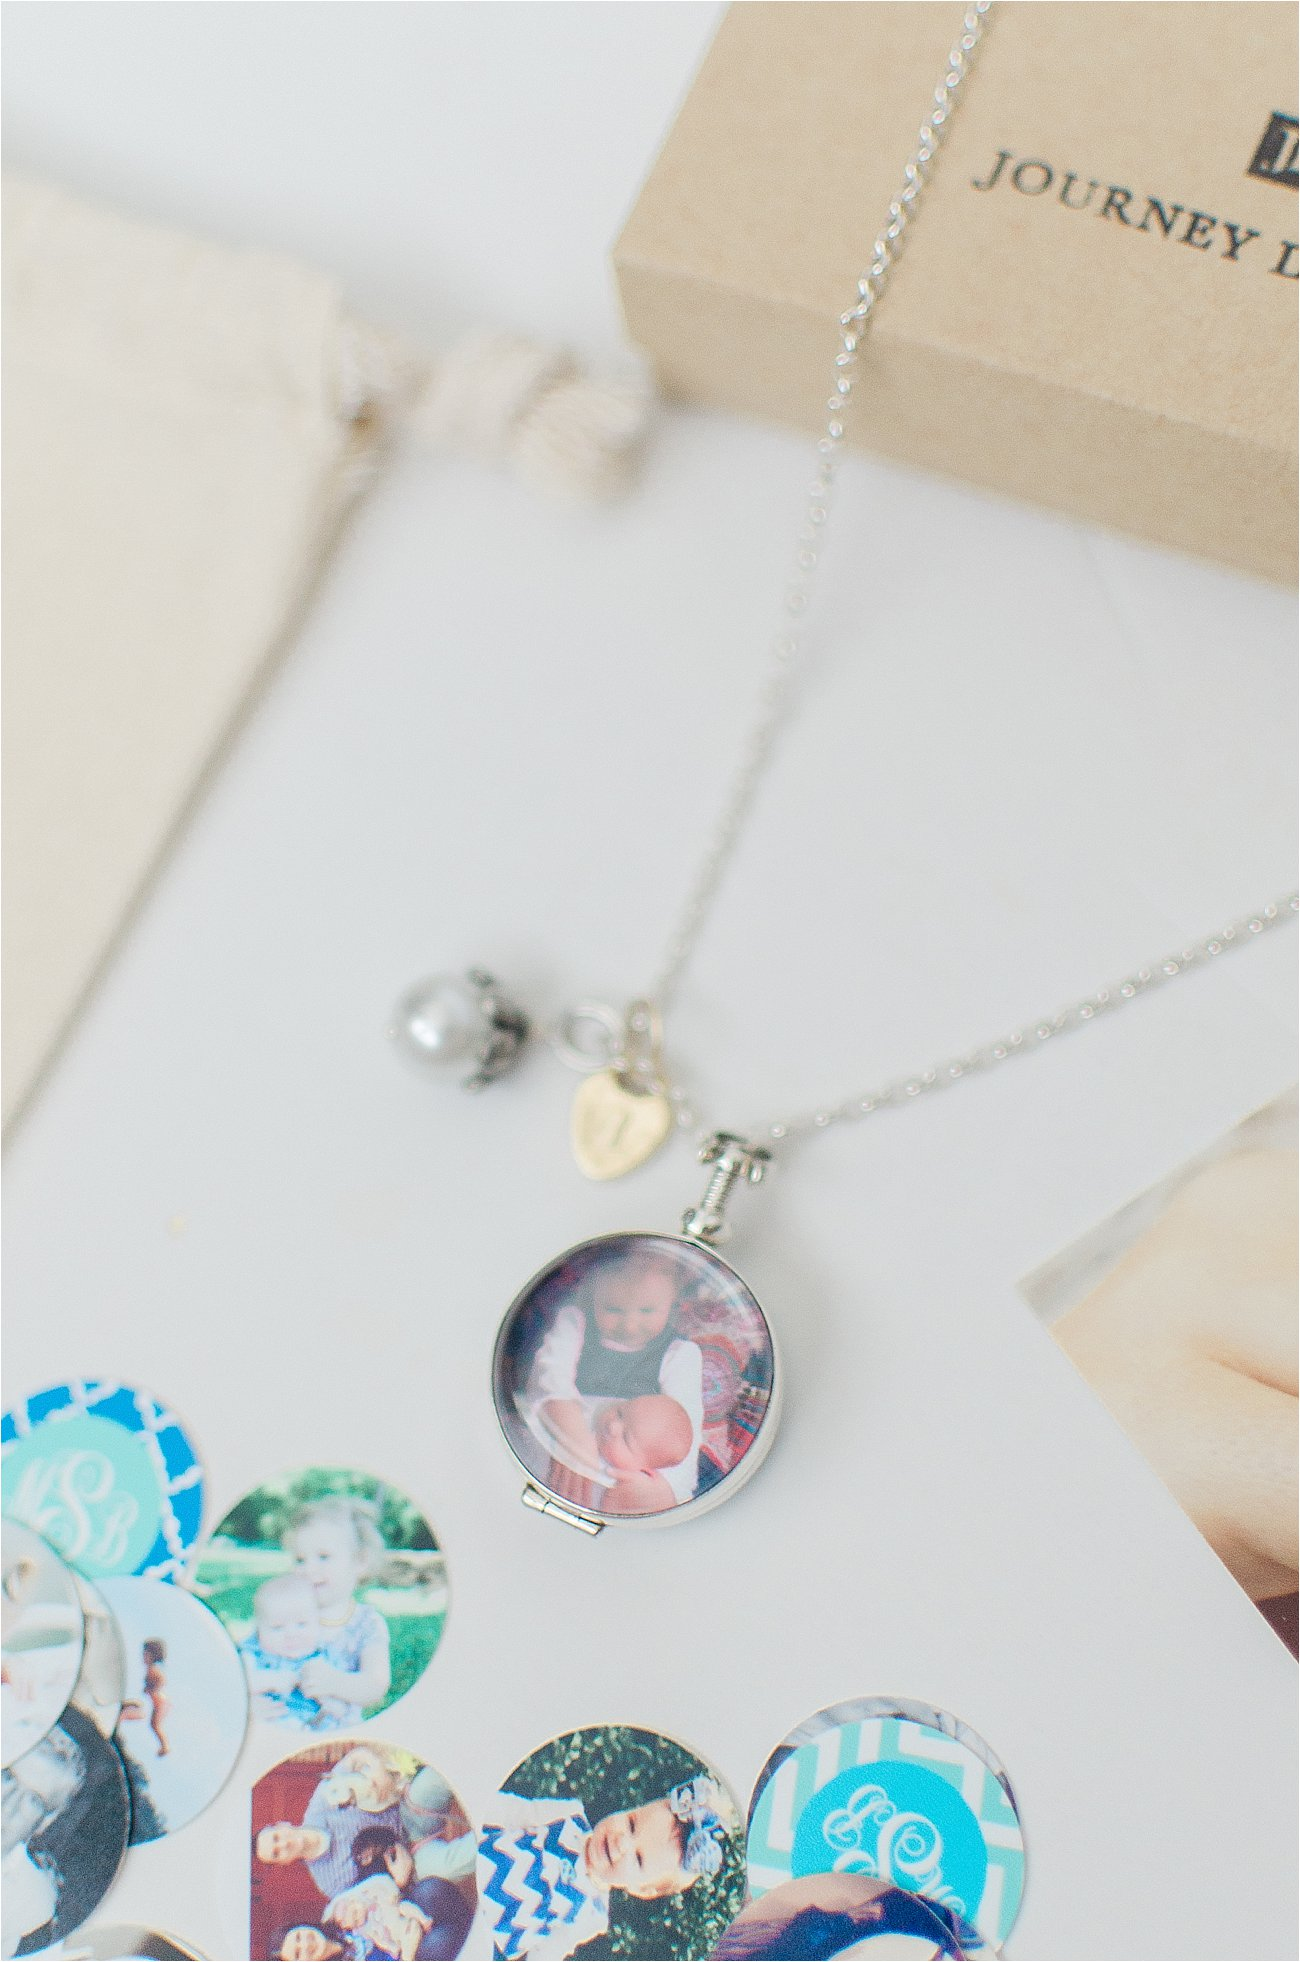 Journey Lockets, Meaningful Personalized Jewelry Review (5)